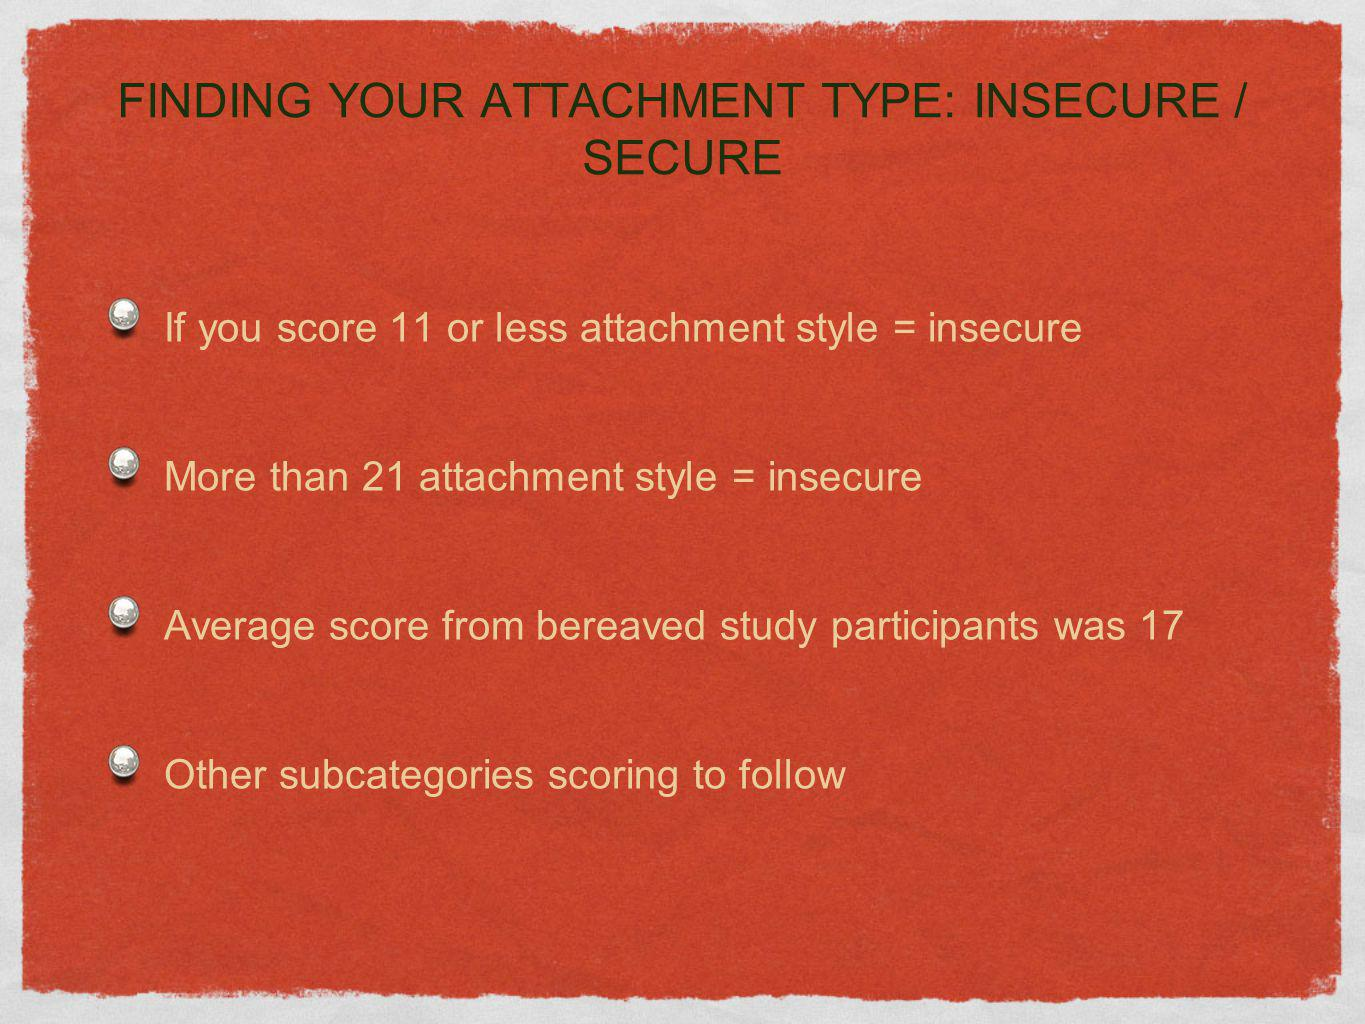 FINDING YOUR ATTACHMENT TYPE: INSECURE / SECURE